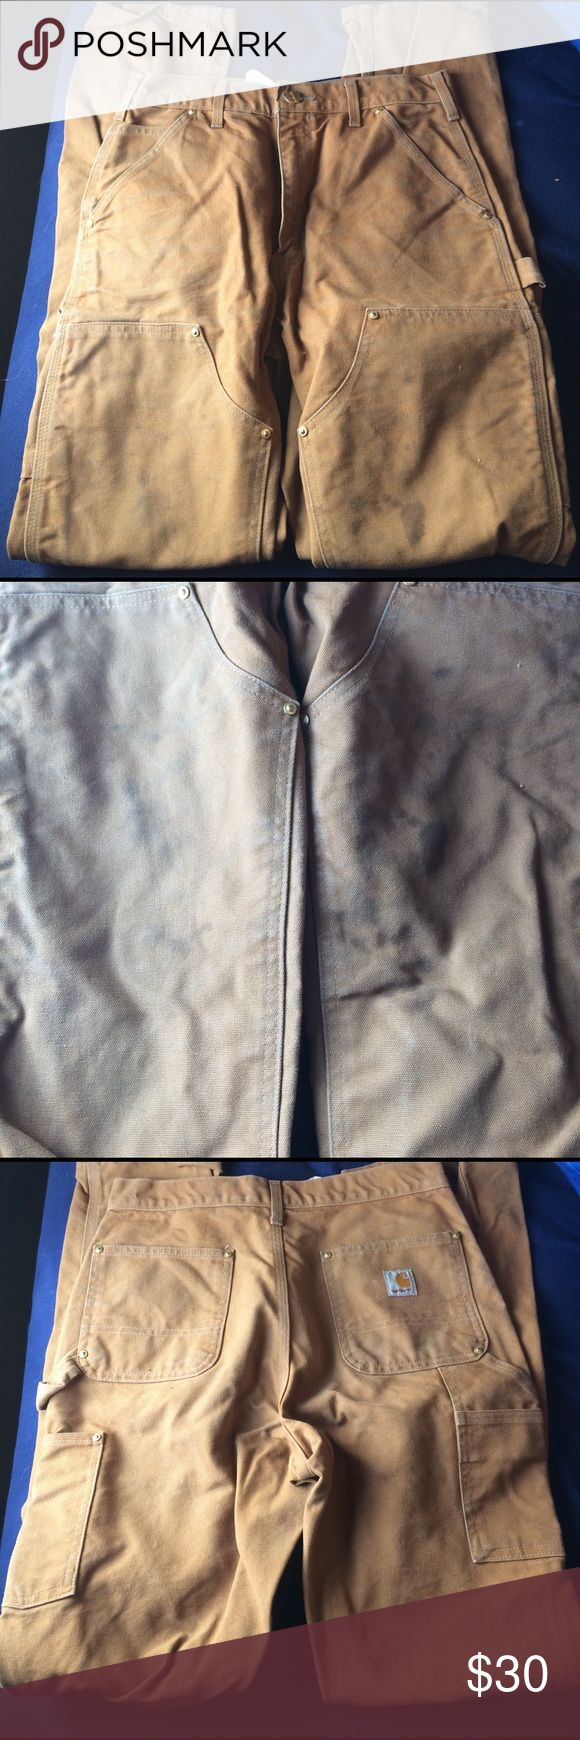 Carhartt work pants Carhartt work pants small stains pictured 30x34l. Make offer/bundle or both all considered Carhartt Jeans Straight Leg